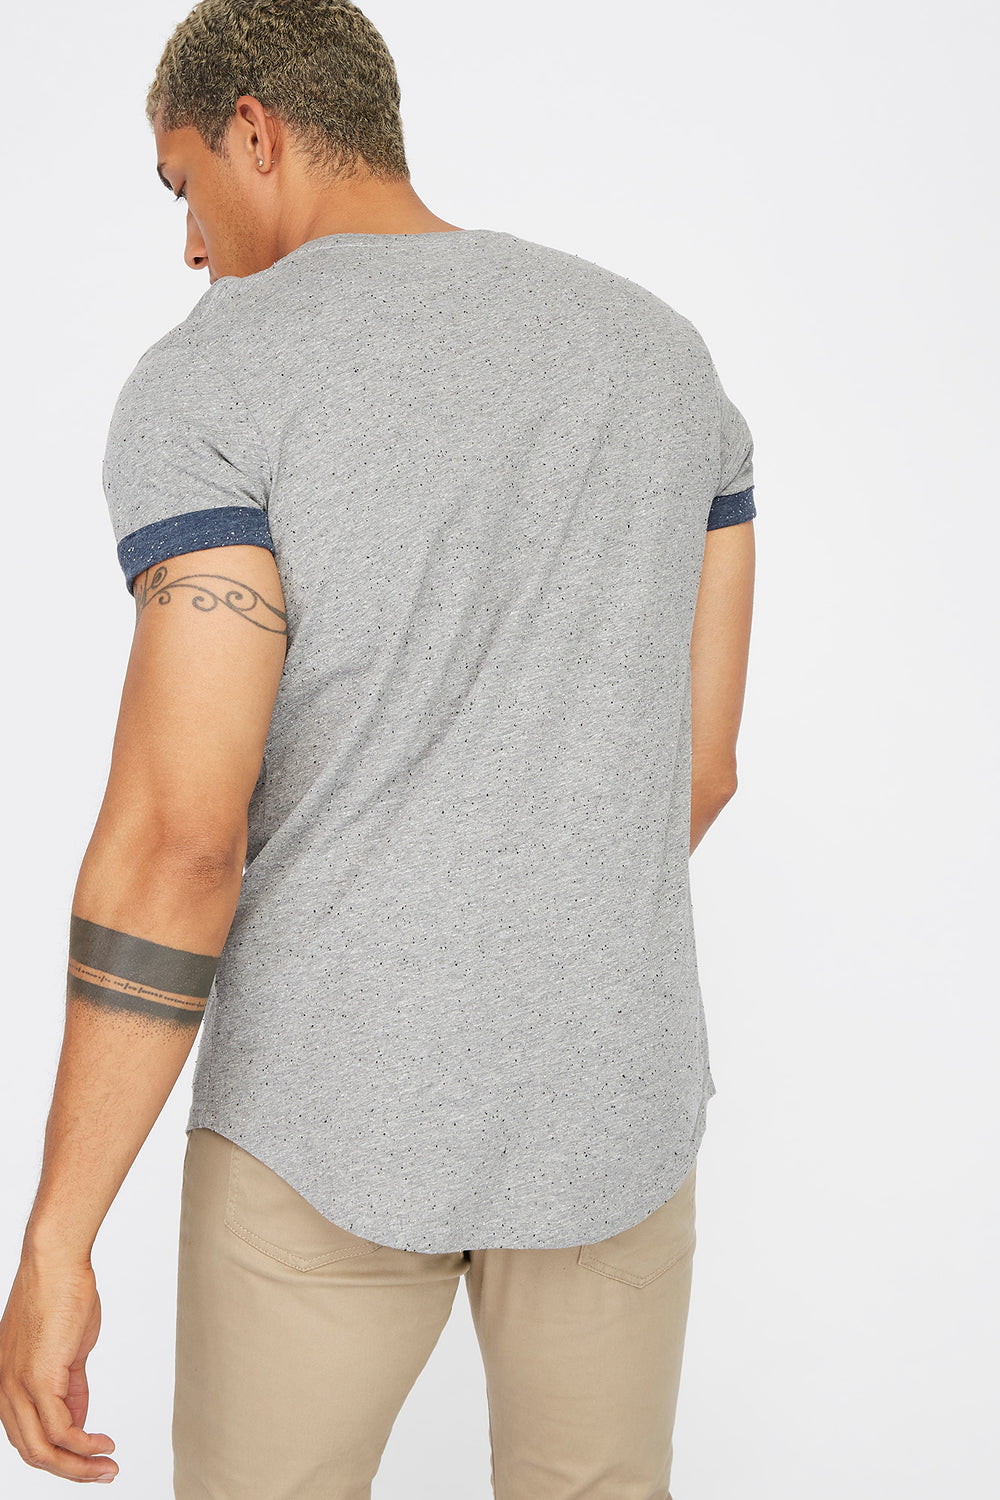 Speckled Cuffed Sleeve T-Shirt Heather Grey